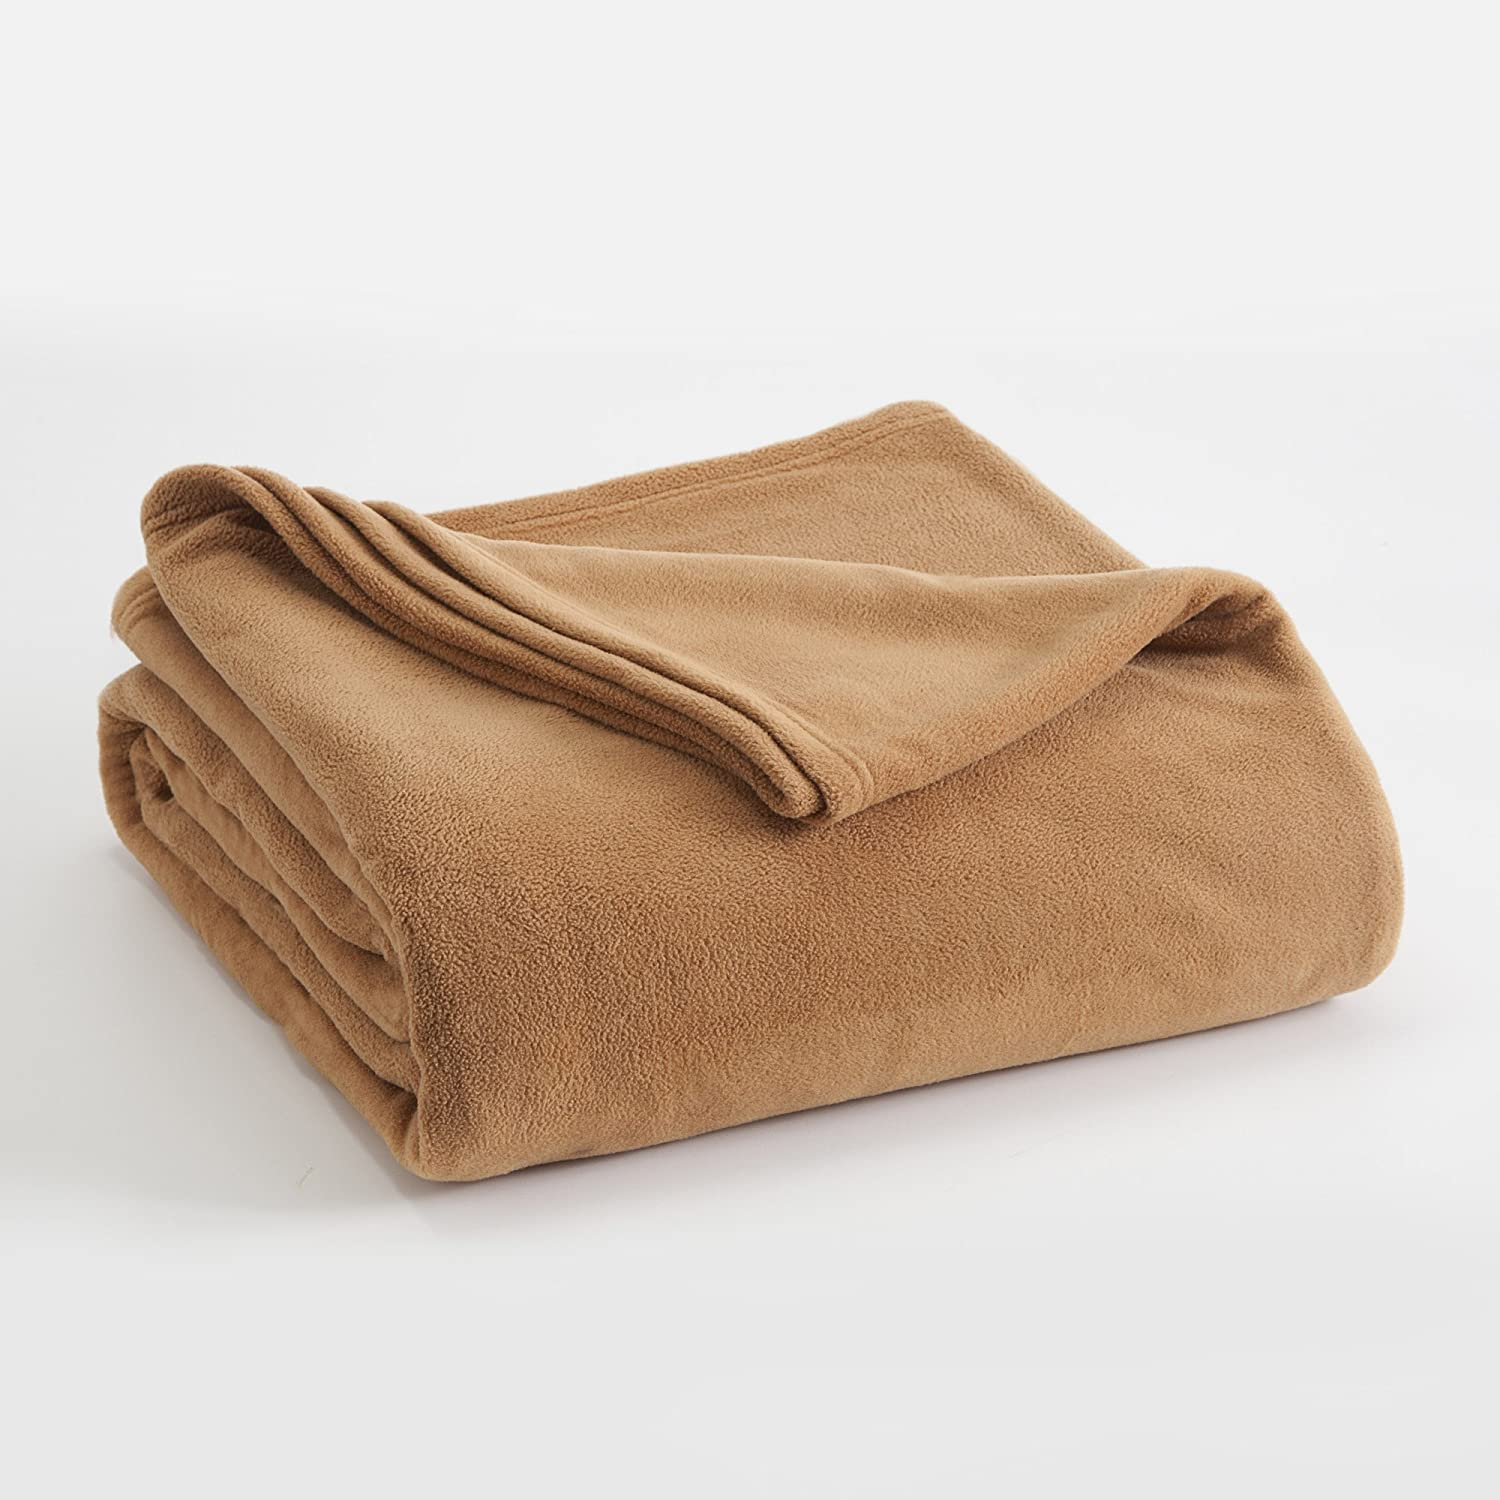 FLEECE BLANKET BY VELLUX - King, Microfiber, Polar fleece, Lightweight, Warm, Soft - Brown